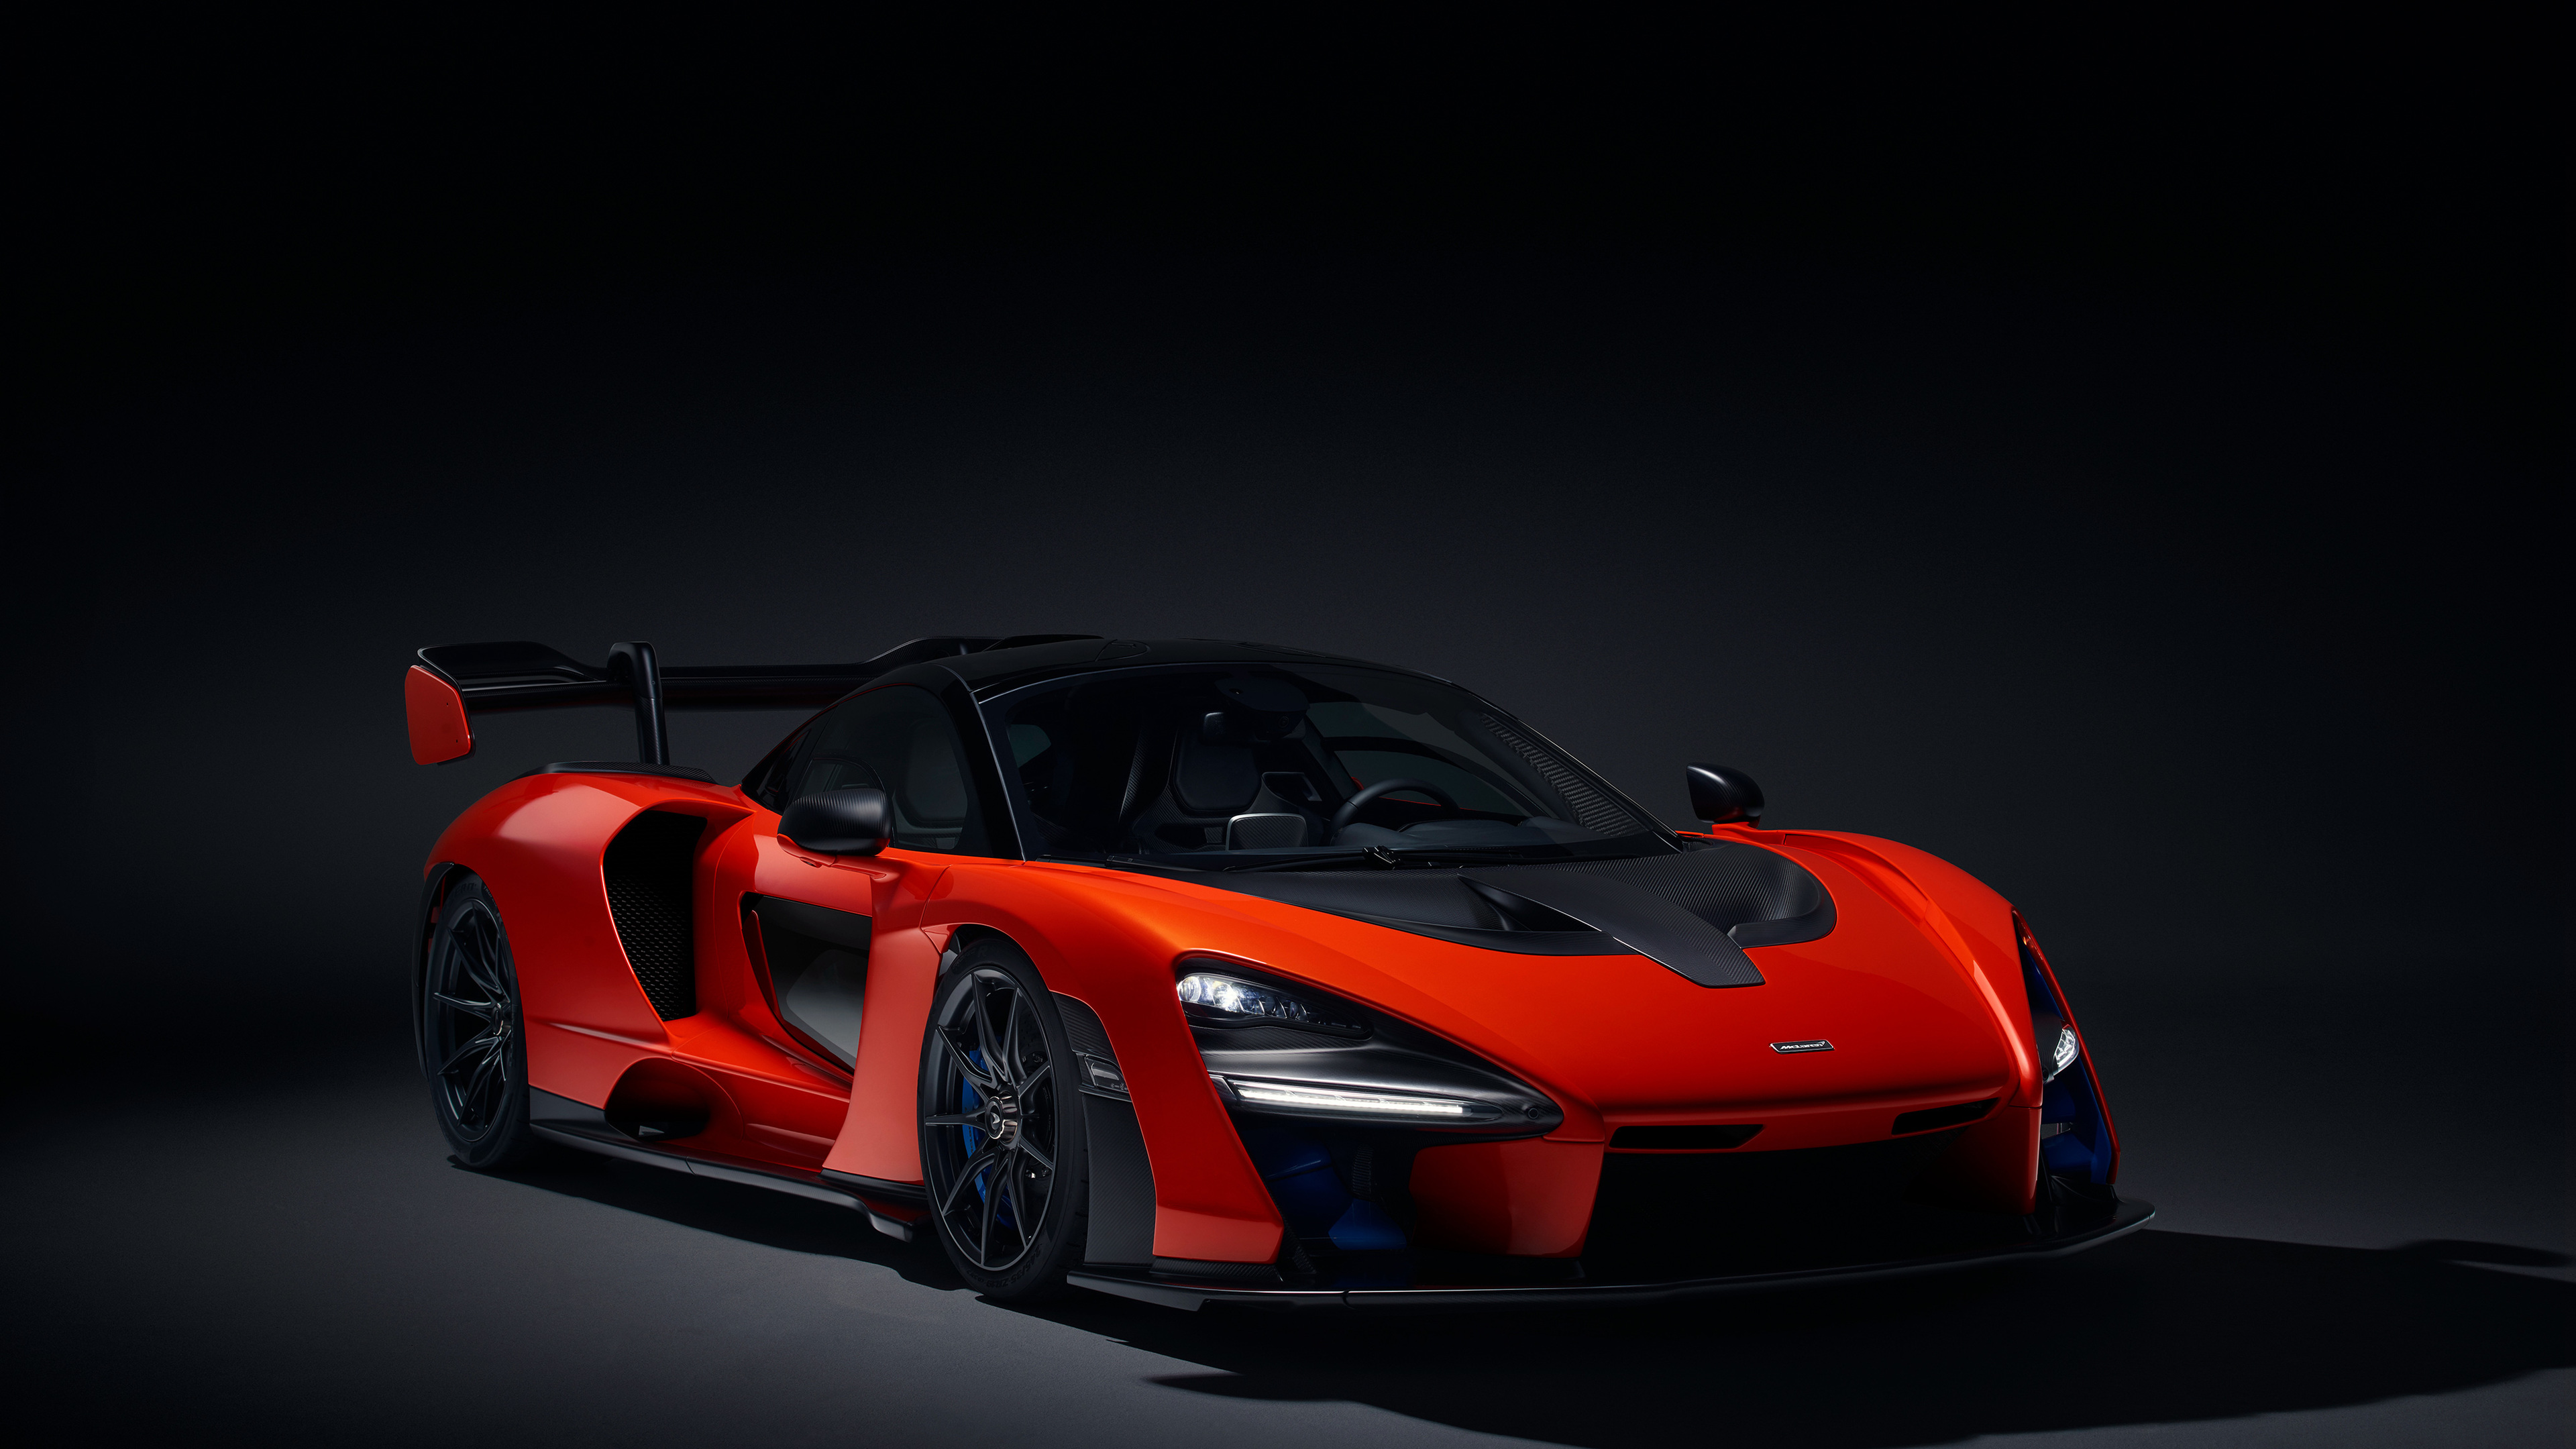 mclaren senna 1539108675 - McLaren Senna - mclaren wallpapers, mclaren senna wallpapers, hd-wallpapers, 4k-wallpapers, 2018 cars wallpapers